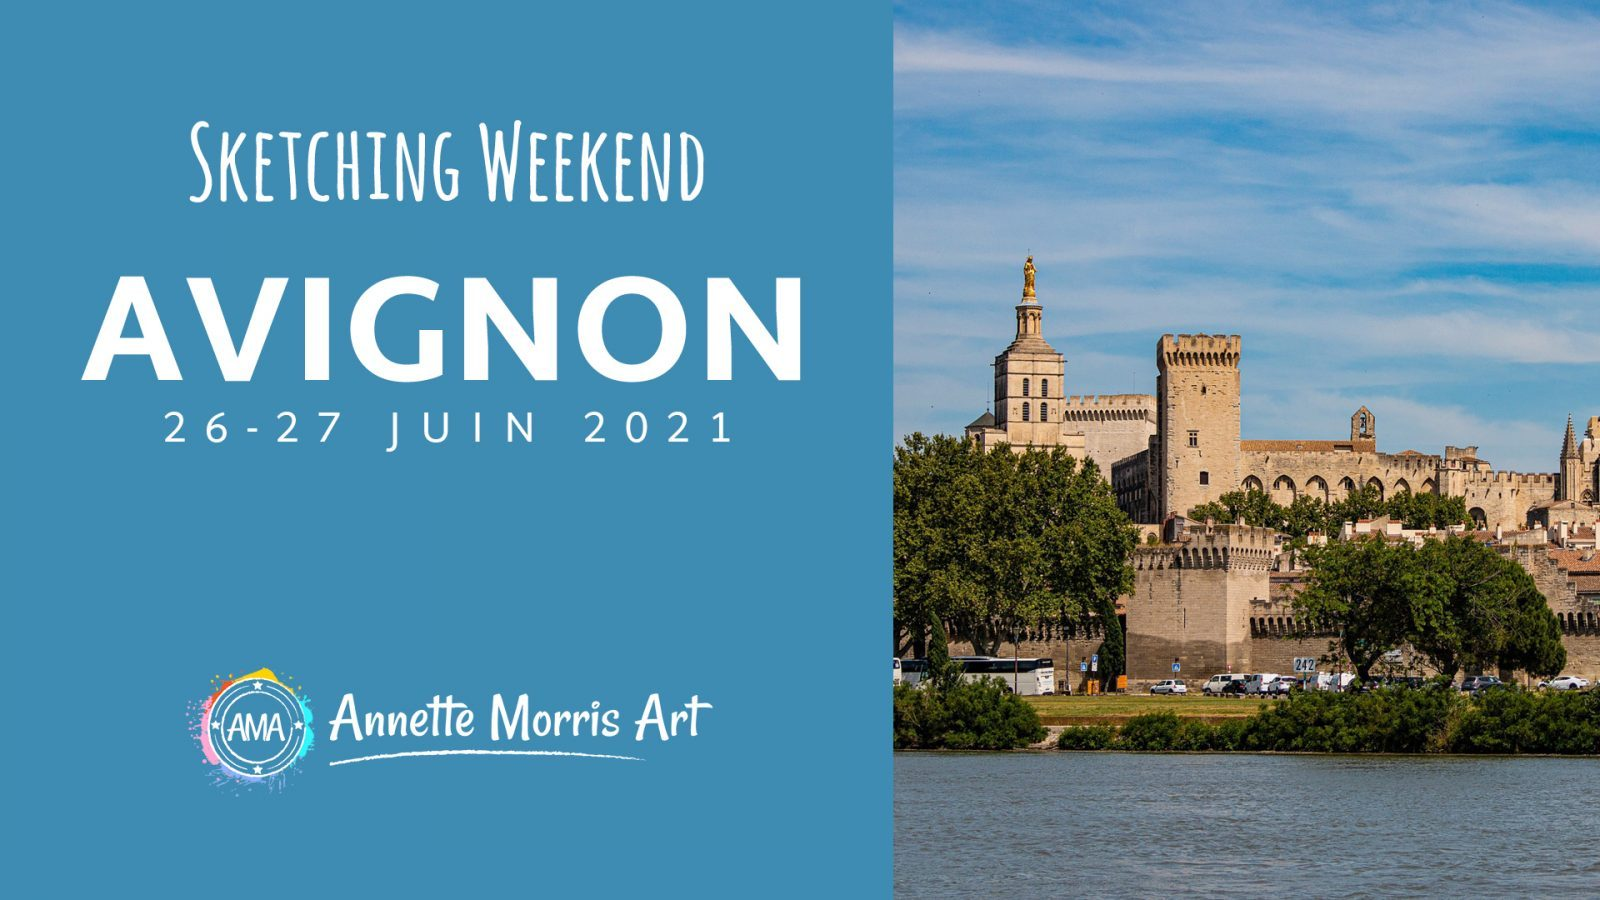 | During this lovely weekend break we'll be sketching around the city and of course the infamous Pont d'Avignon. Our sketchbooks will be filled with colour as we study water, architecture, and the hustle bustle of city life at the 'gateway to Provence'.… Read More